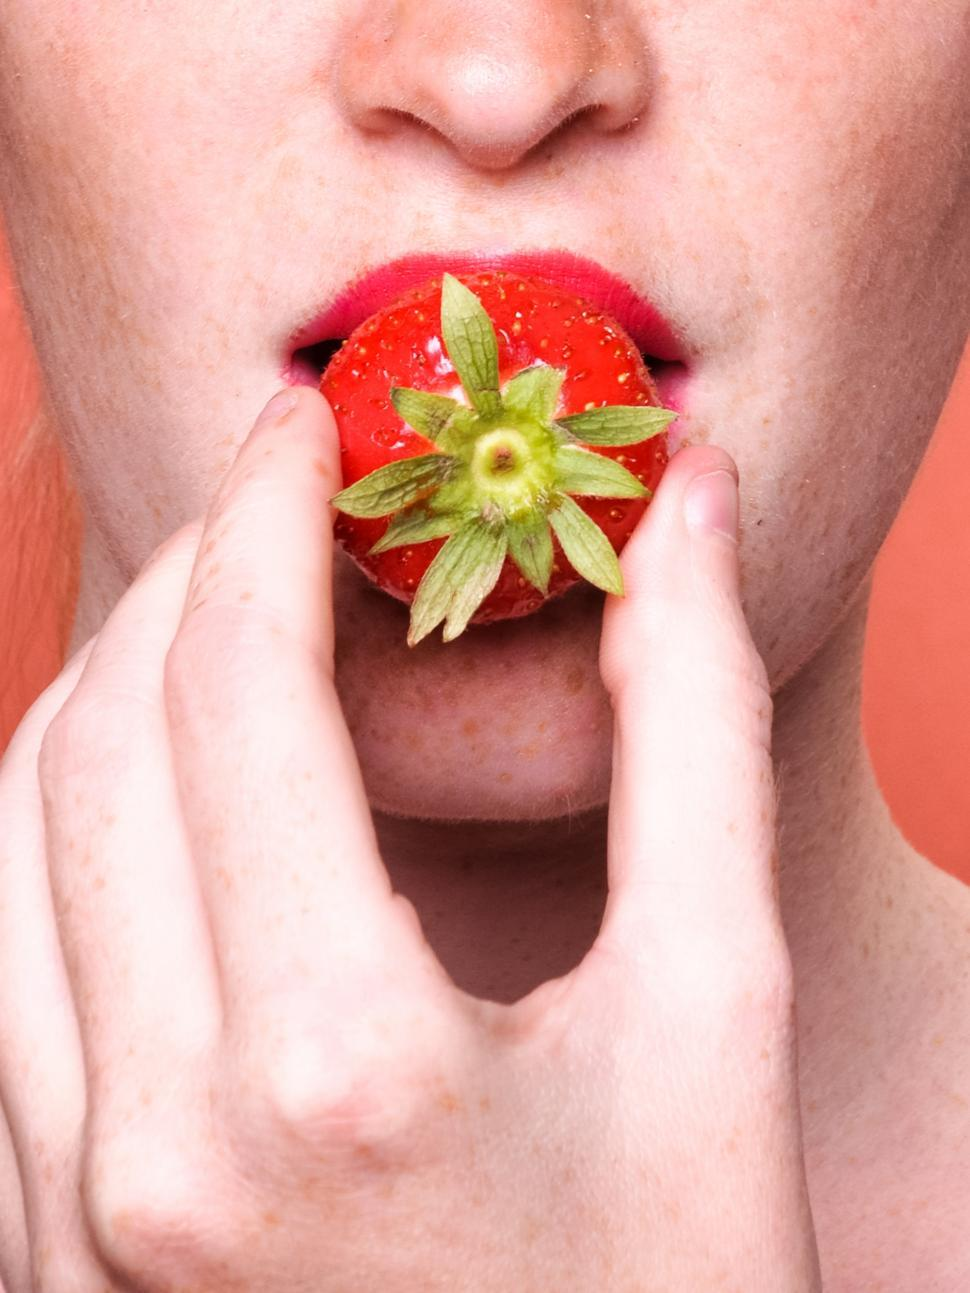 Download Free Stock HD Photo of close up of woman mouth eating strawberry Online